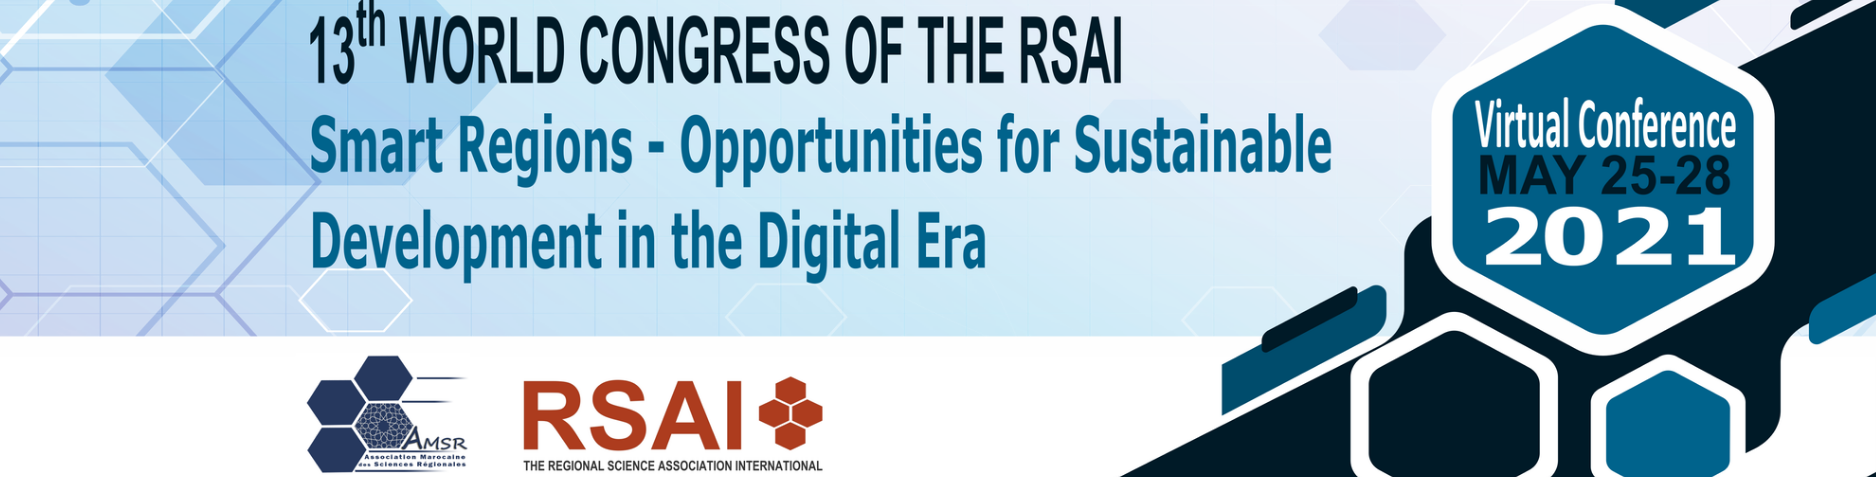 RSAI Congress Programme 2021 is unveiled!